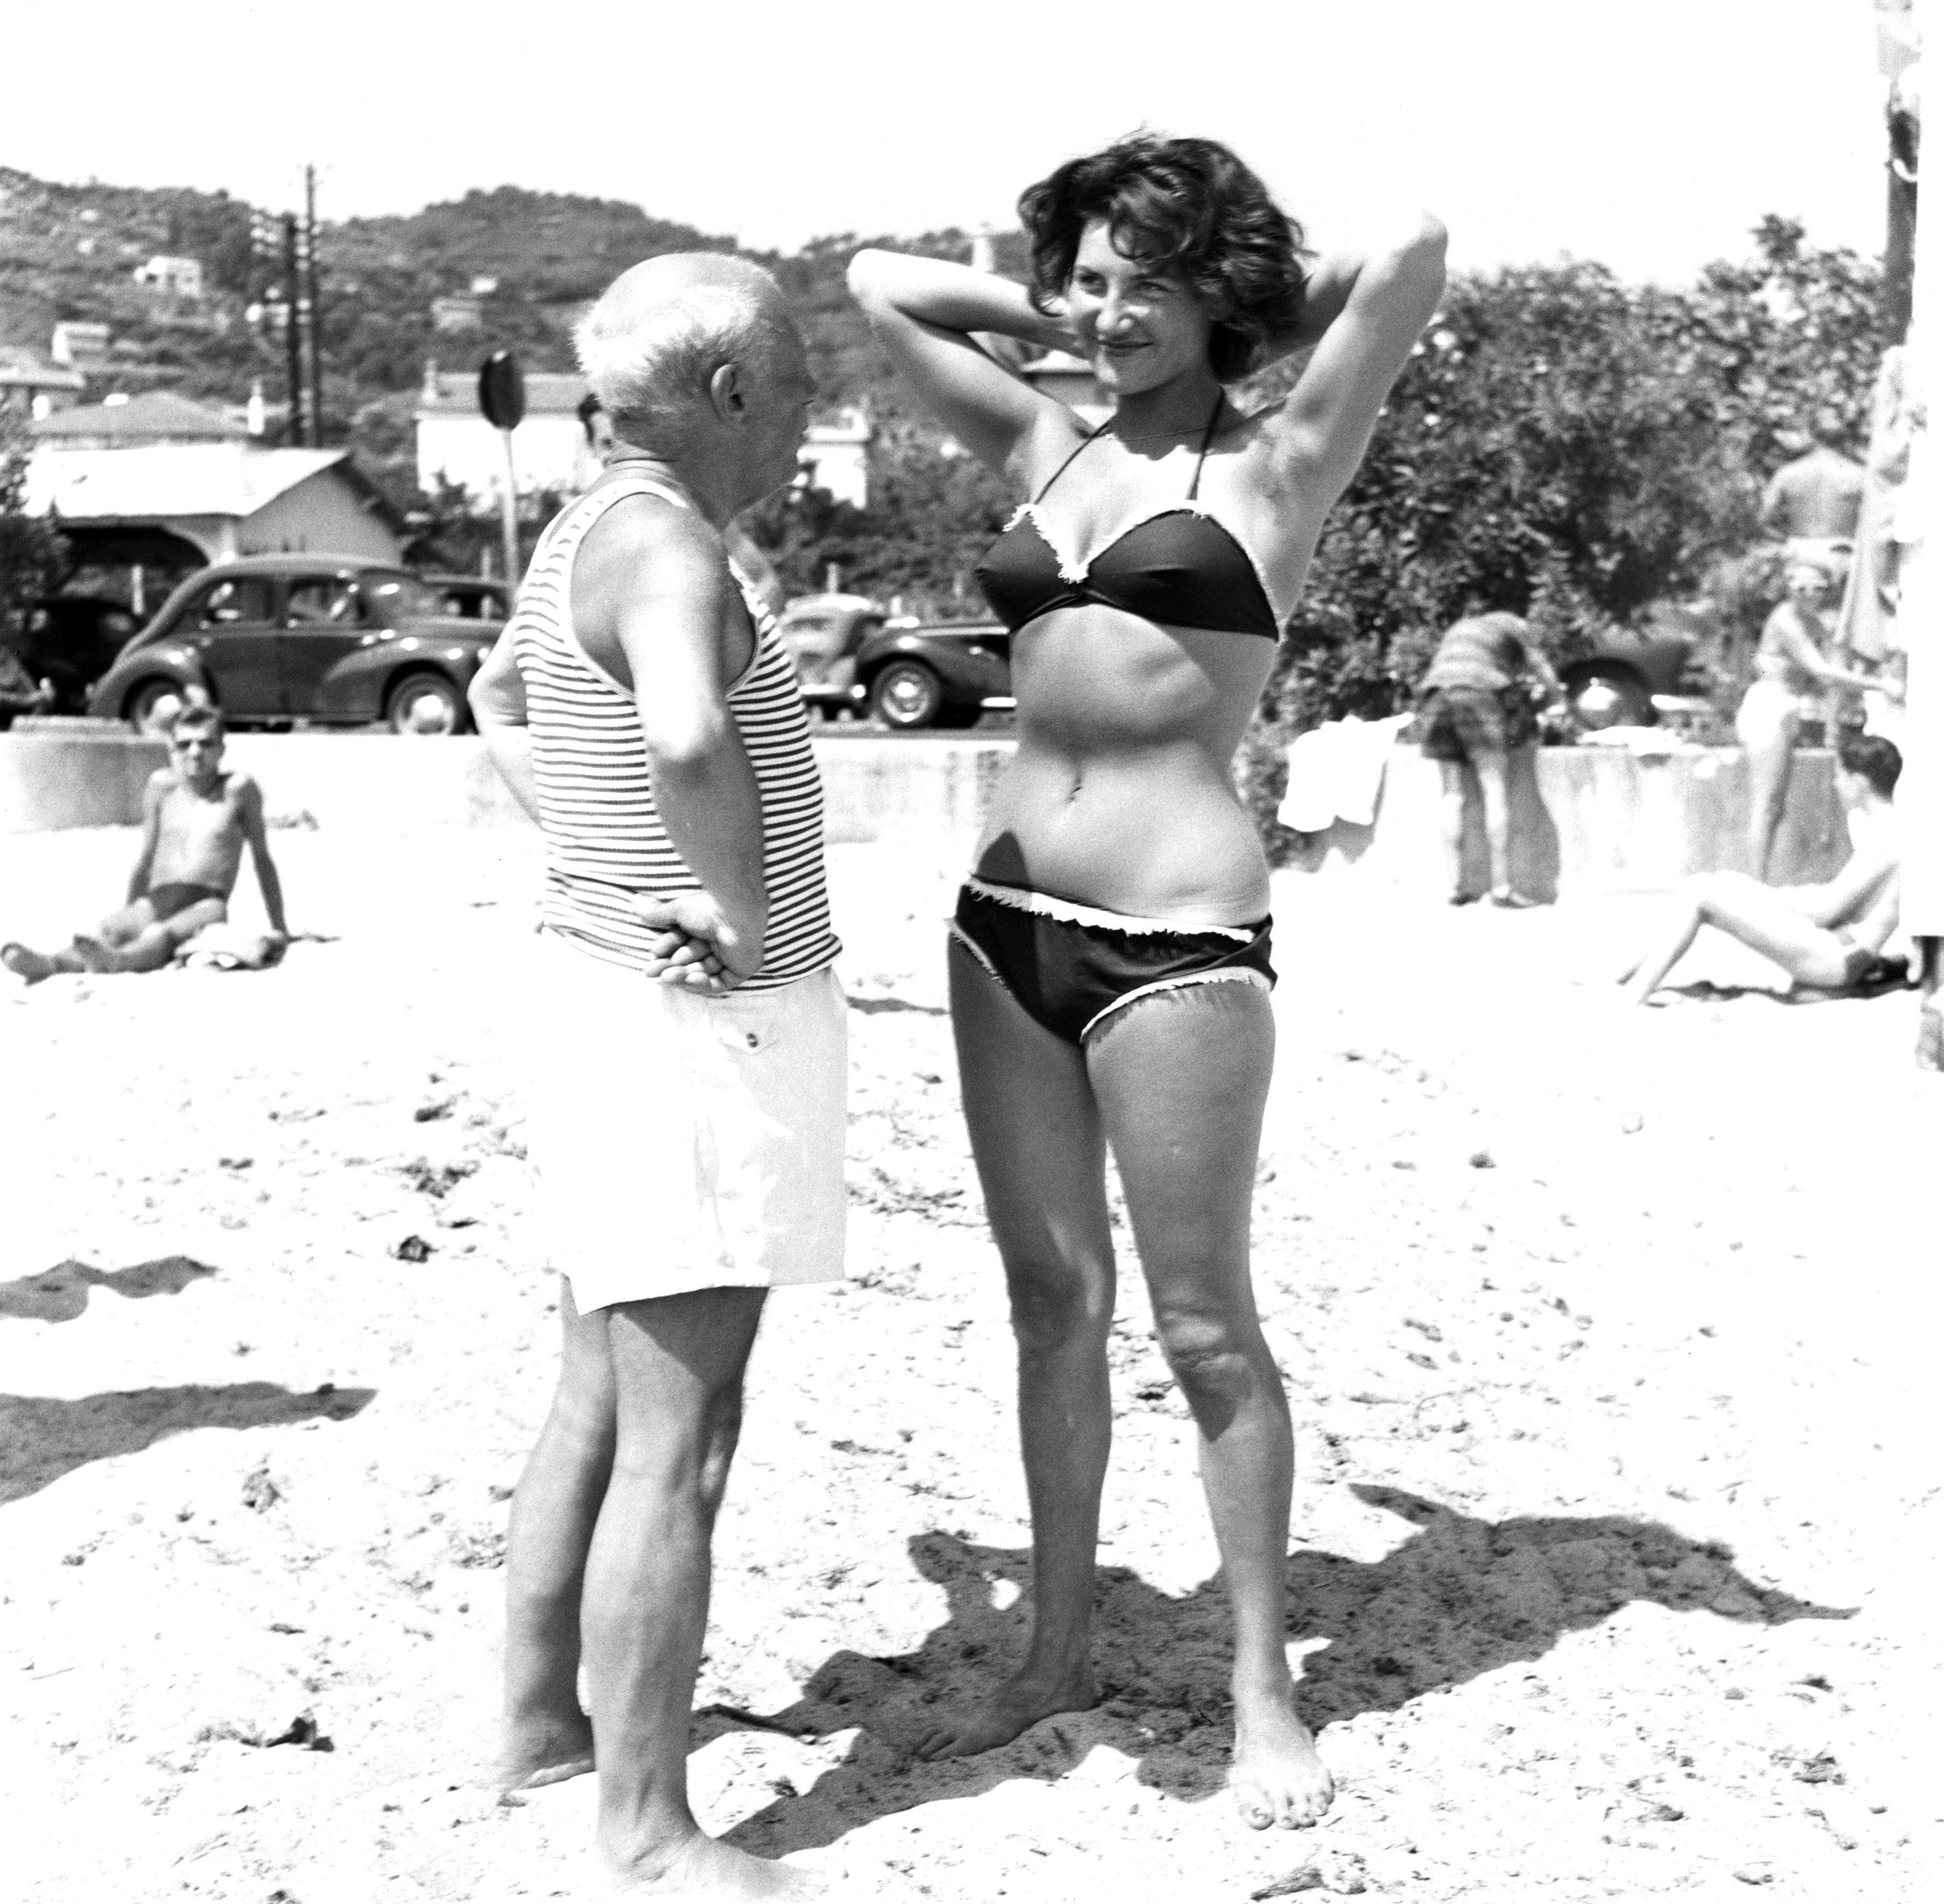 Picasso And Bikini-Clad Woman On The Beach